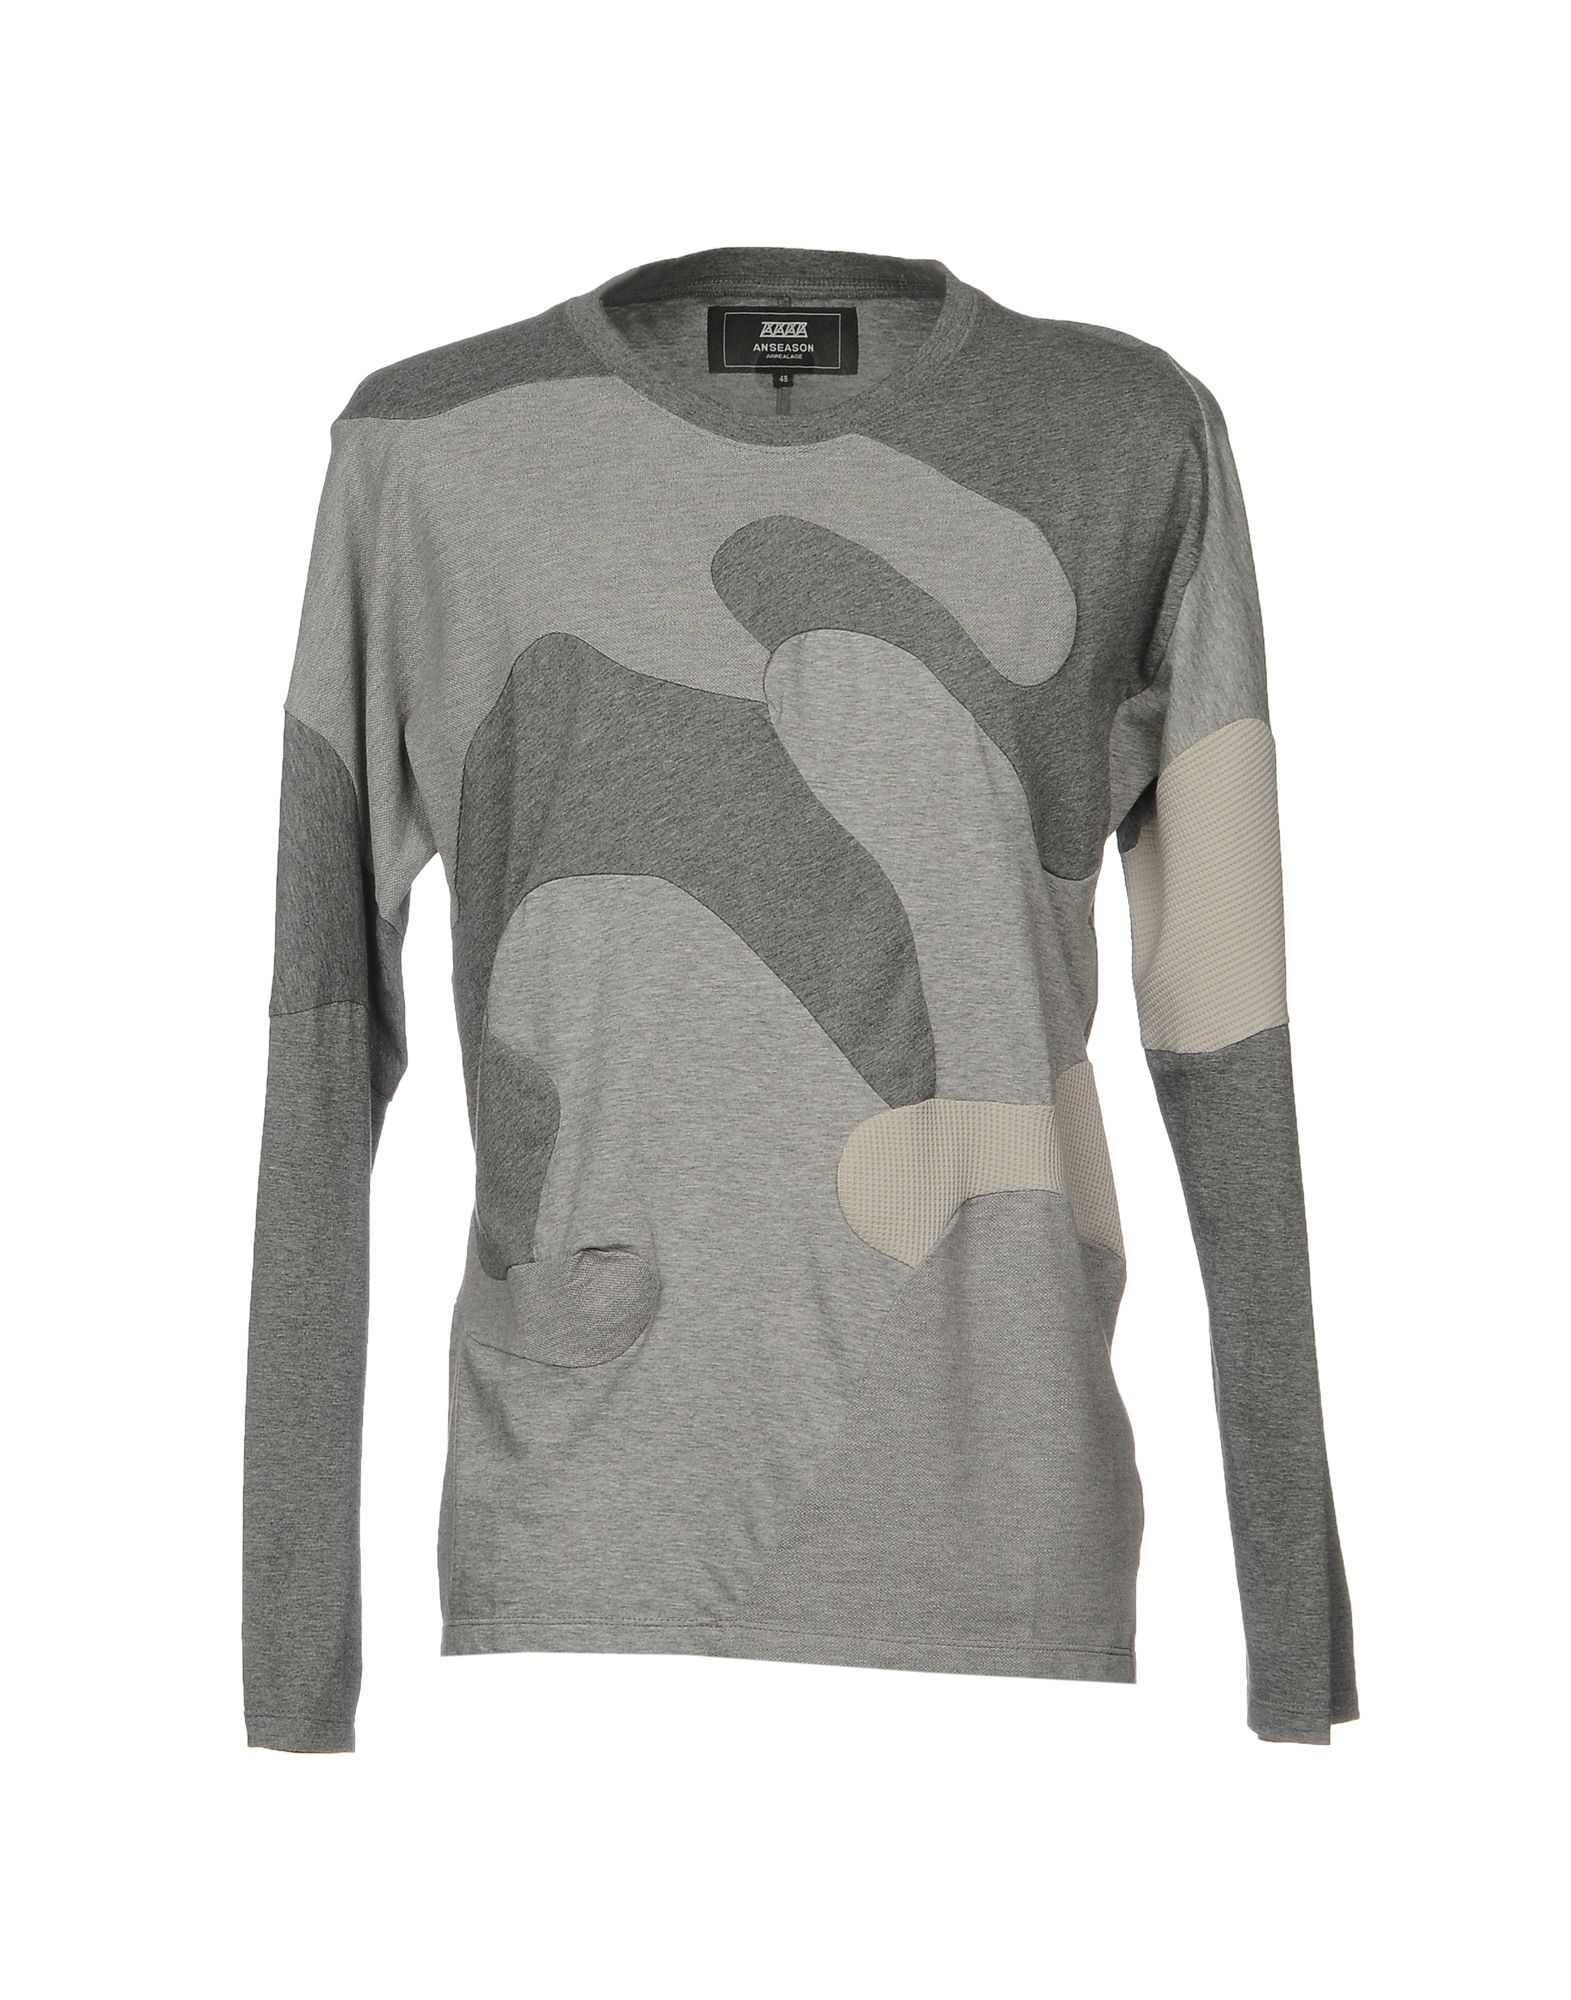 ANREALAGE T-Shirts in Grey